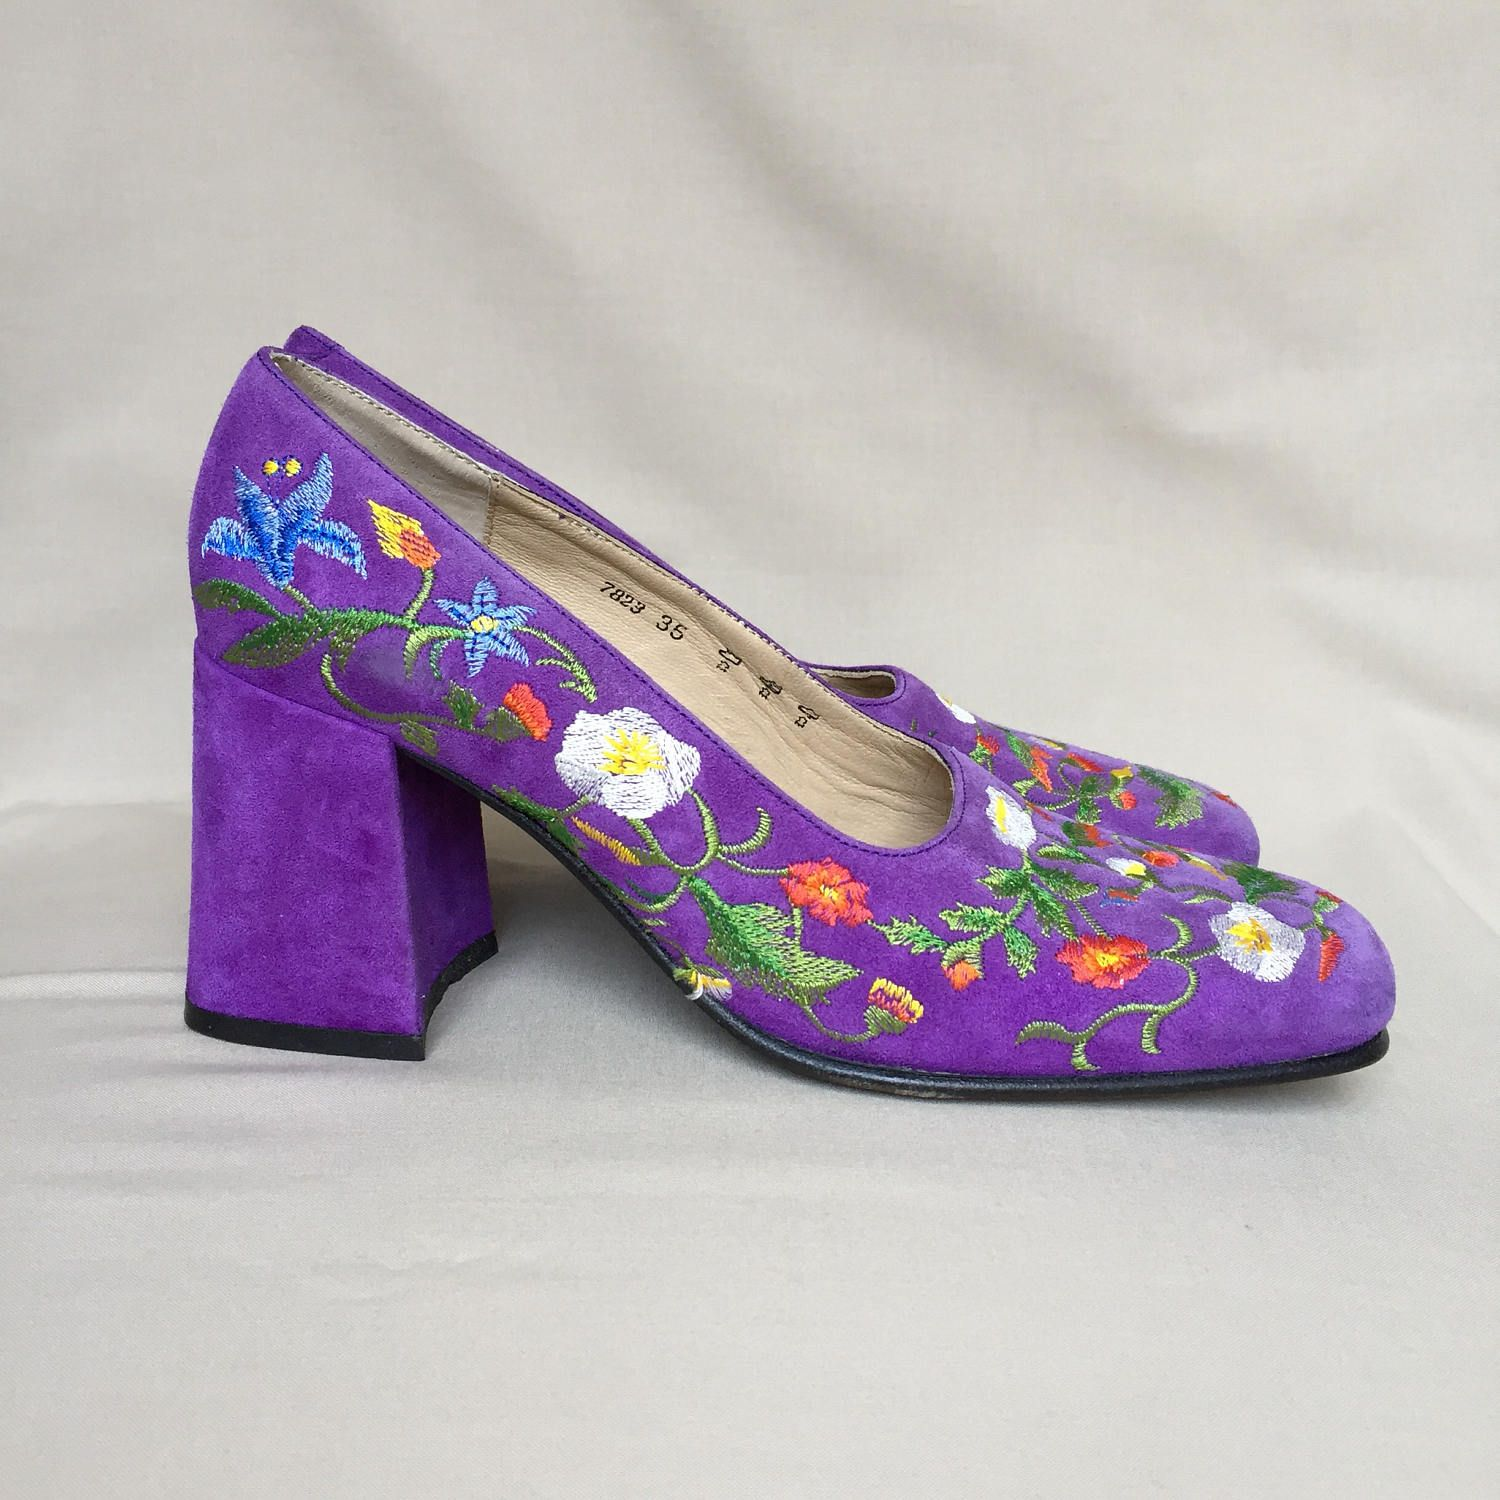 Vintage shoes / Freelance / embroidered shoes / block heel ...